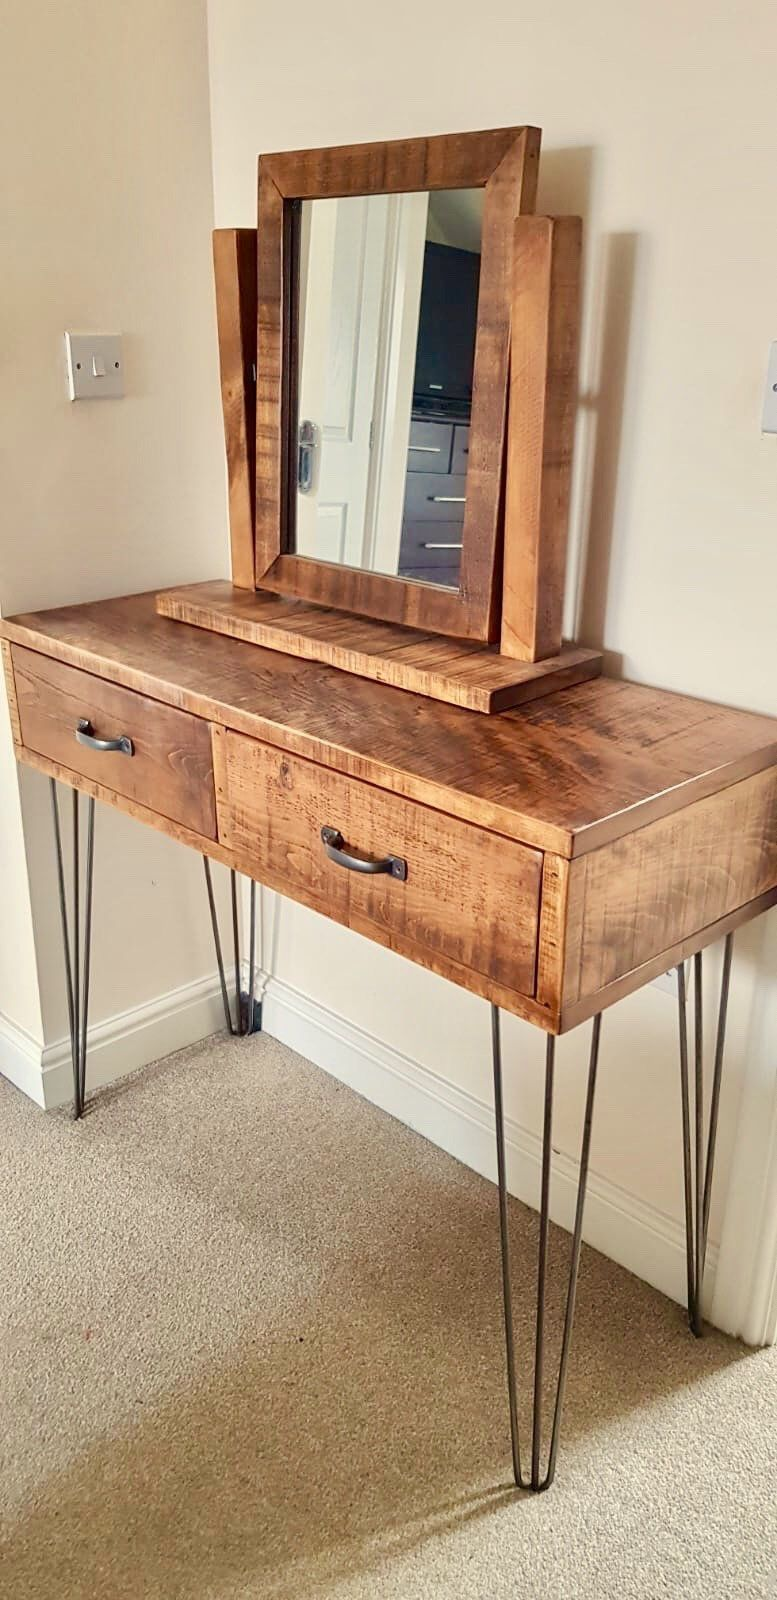 best website 14c41 d819a Rustic Industrial Plank Dressing Table and Mirror Set with ...